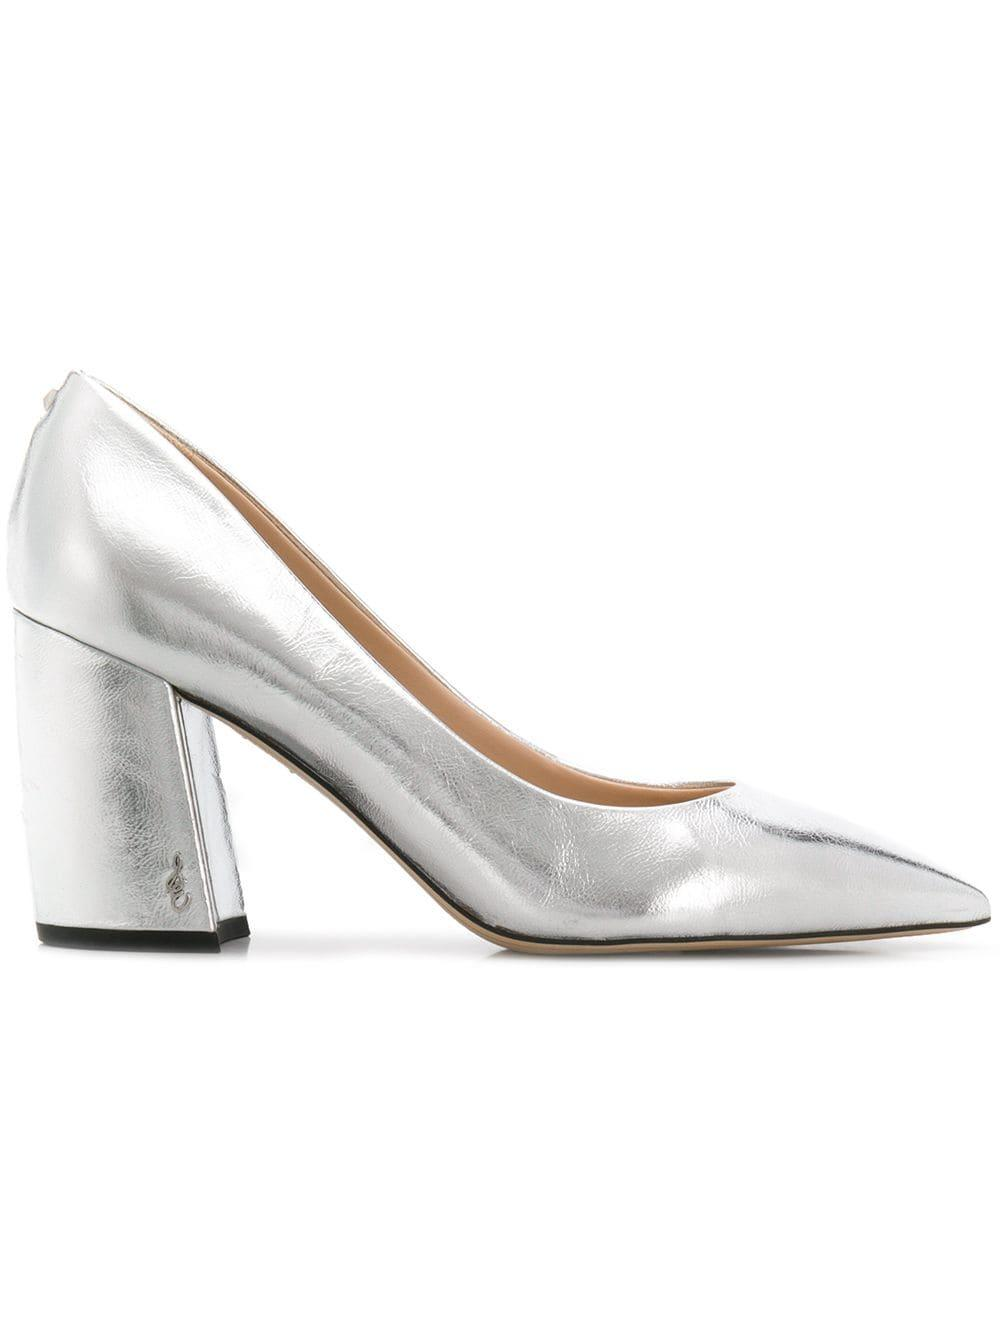 f75241fed41 Sam Edelman Block Heel Pumps - Silver